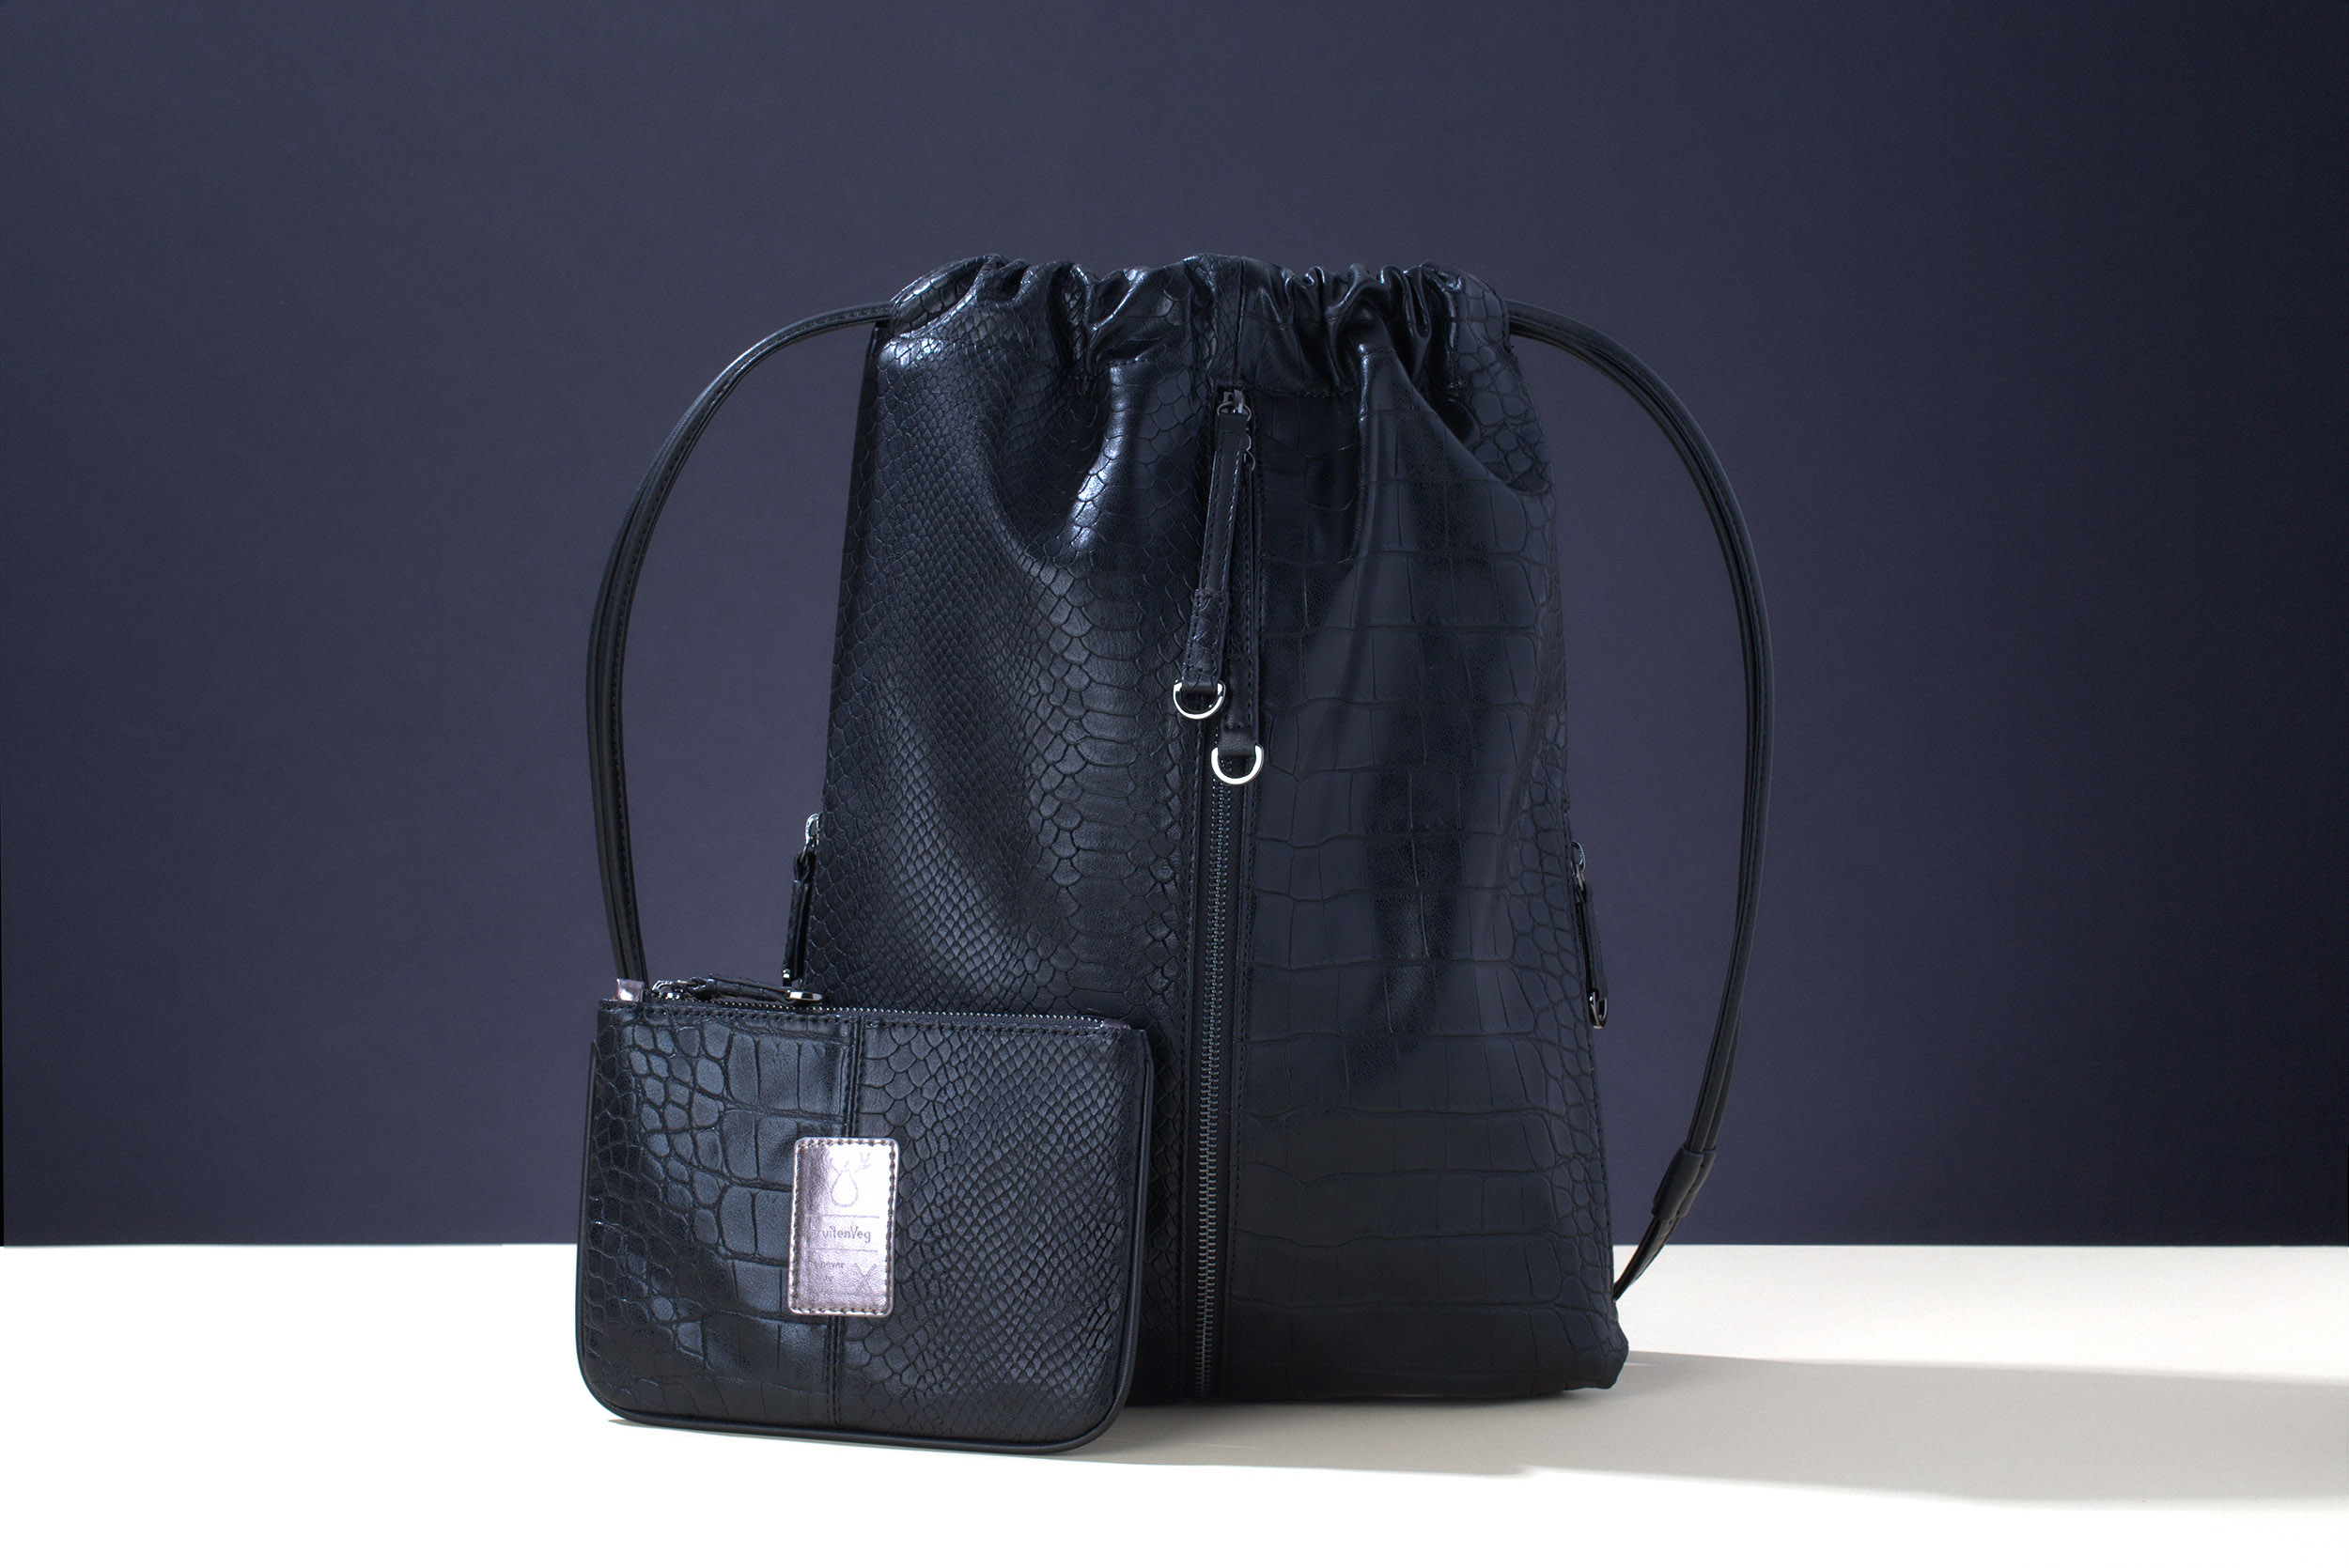 FruitenVeg-MISHI bag-never-leather-eco-cruelty-free-luxury-black-medium-handbag-nyc